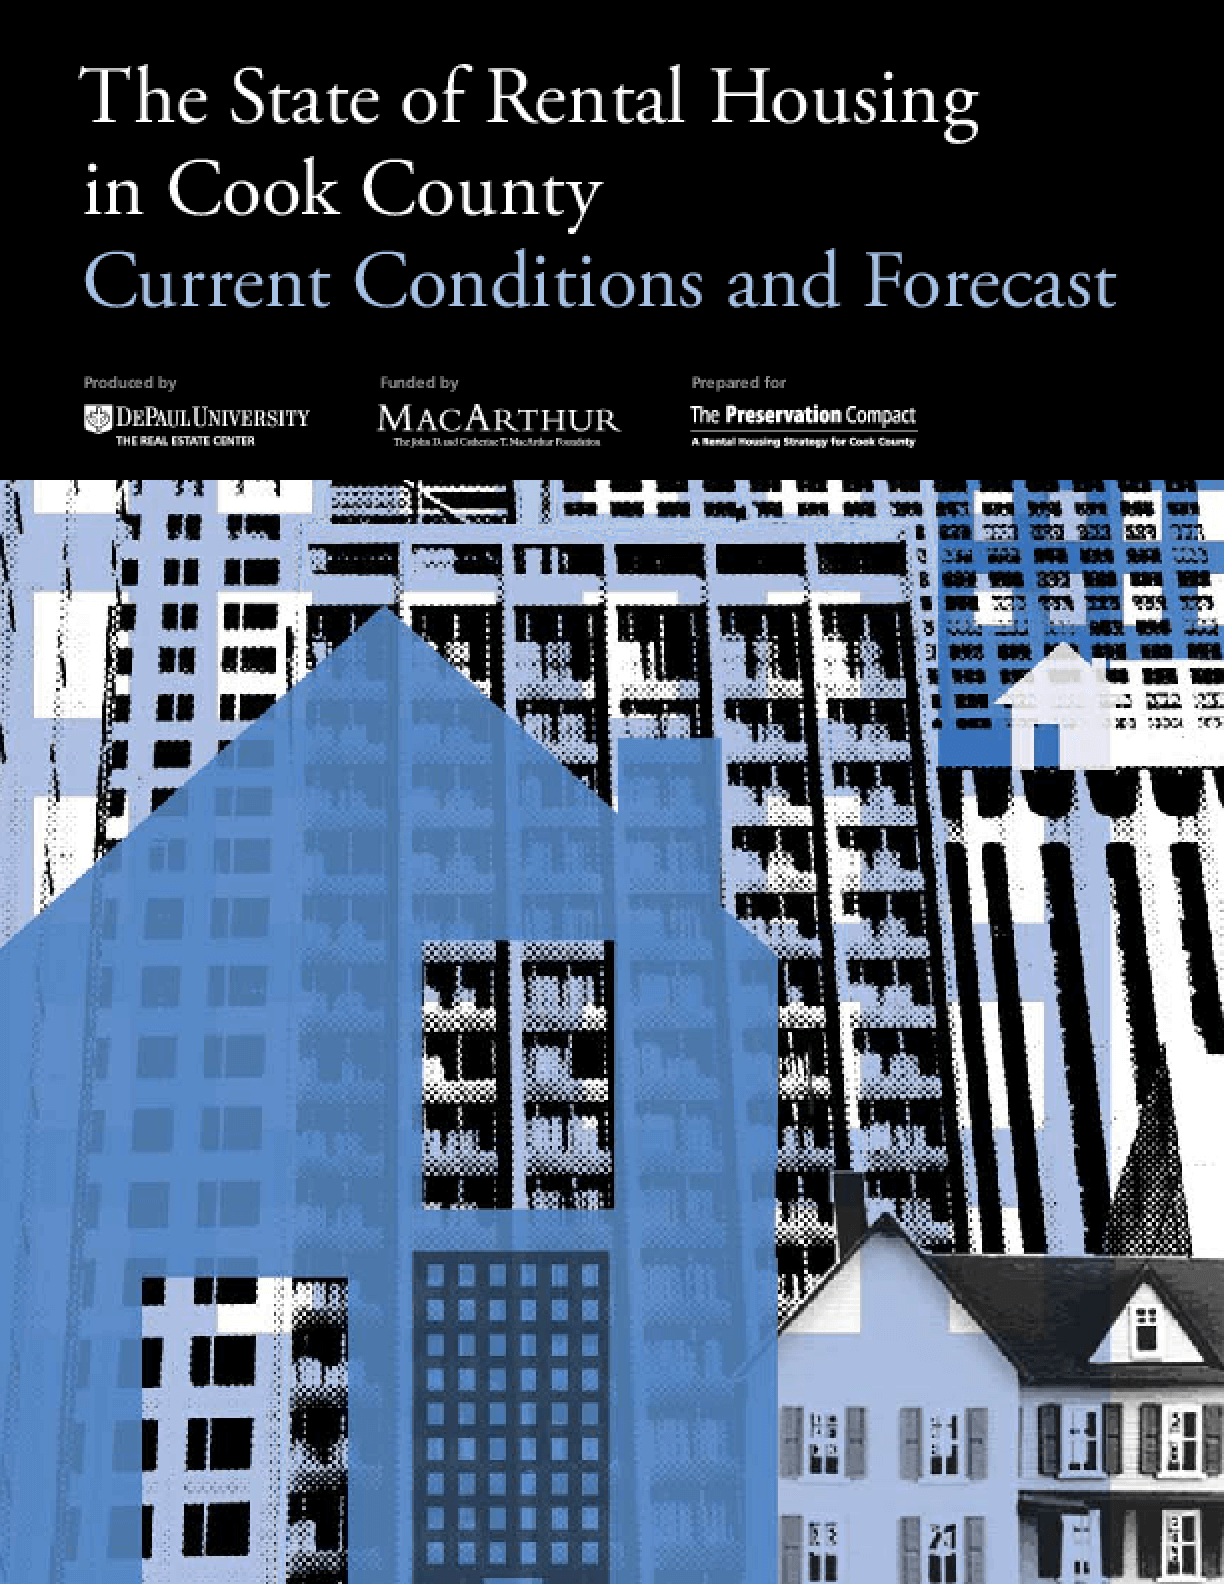 The State of Rental Housing in Cook County: Current Conditions and Forecast